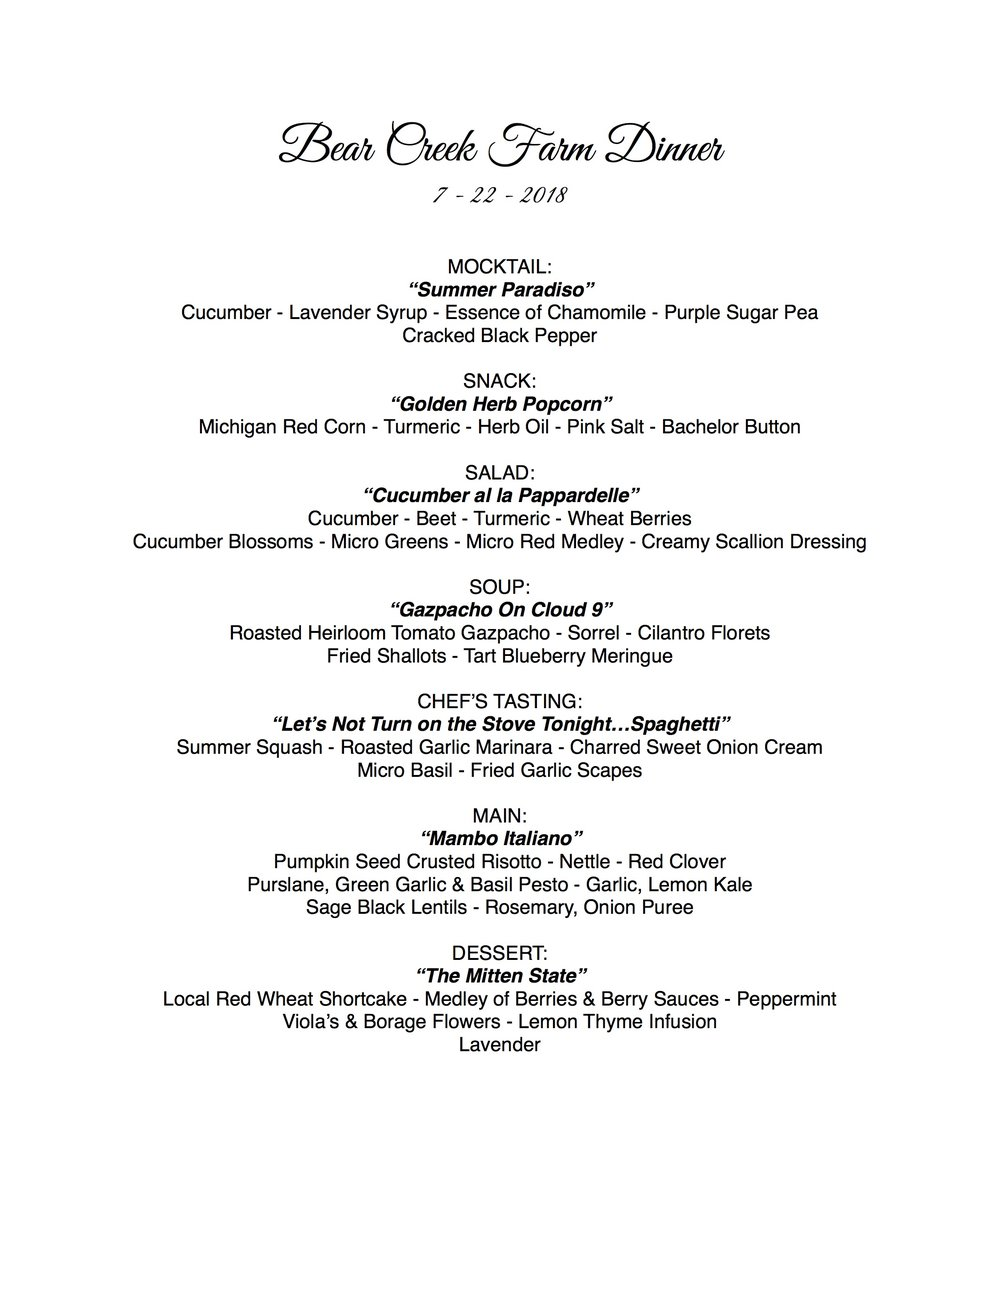 Bear Creek Farm Dinner Menu.jpg